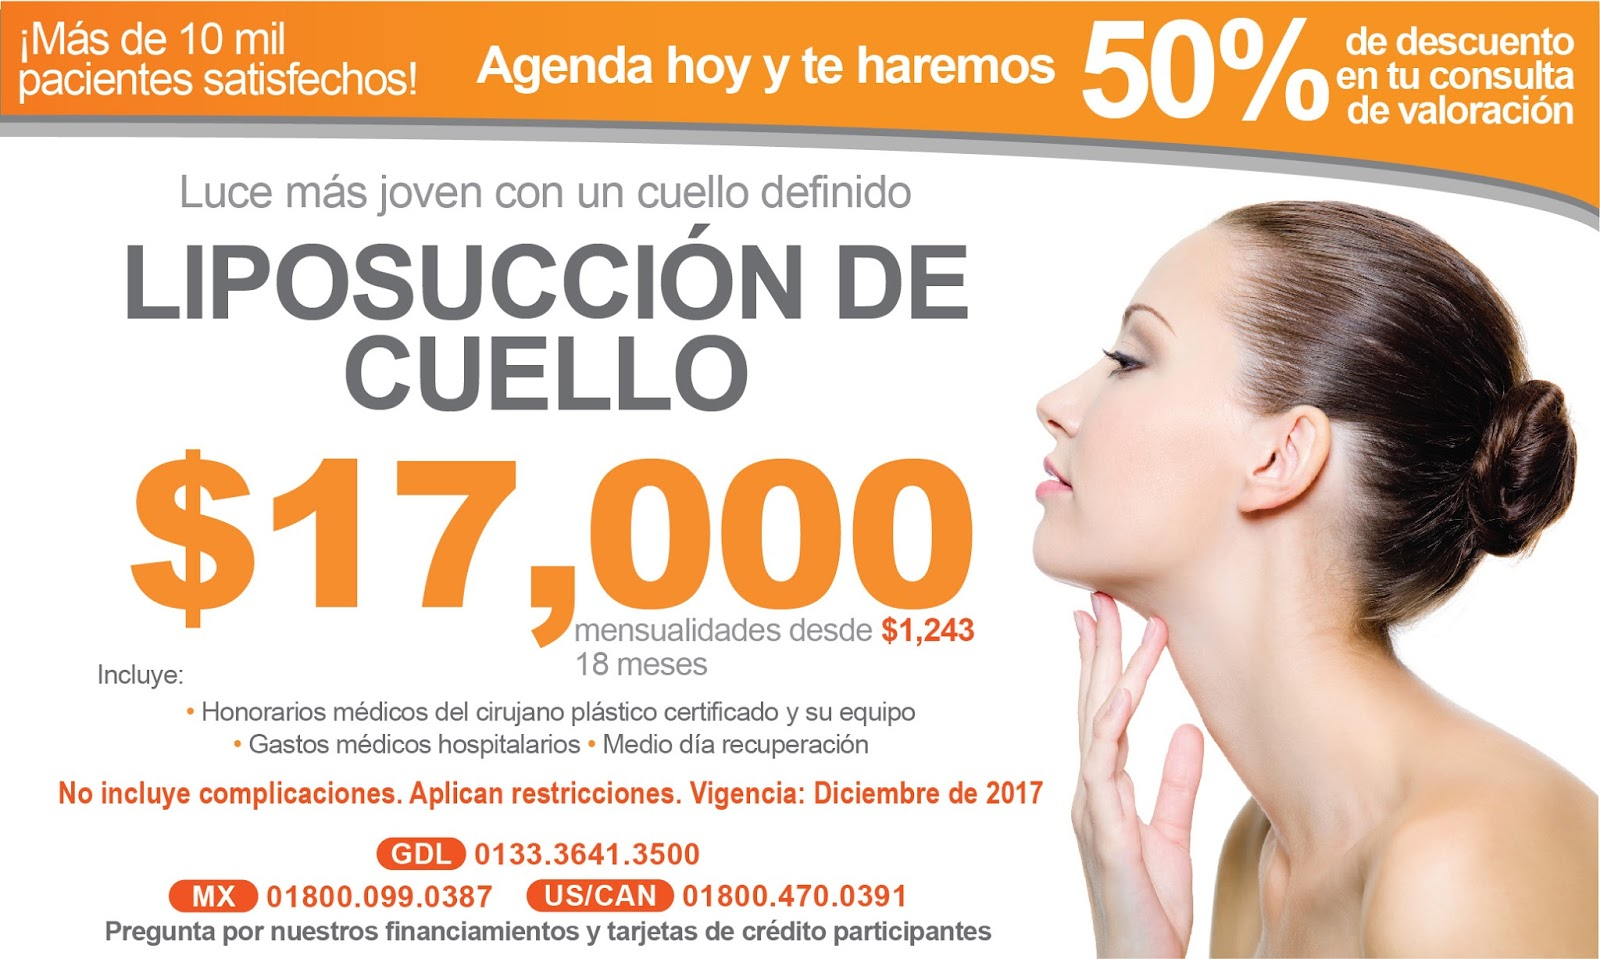 SALUTARIS MEDICAL CENTER: Cervicoplastia y Lipoláser de cuello